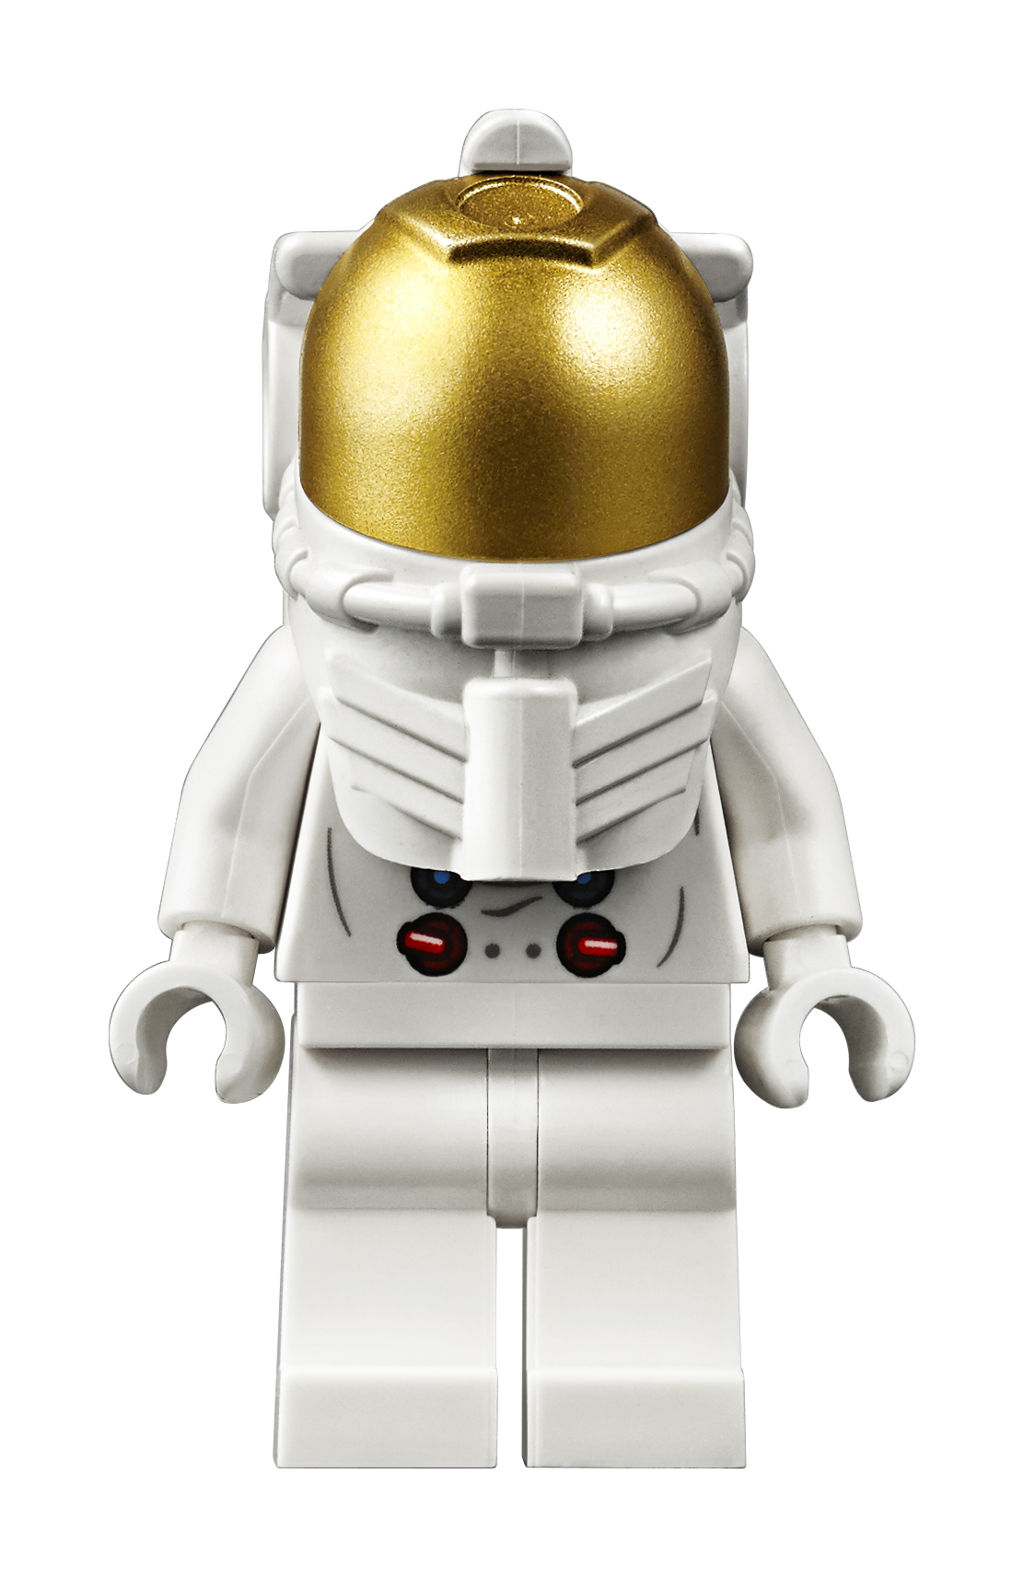 10266 1to1 MF 01 minifig